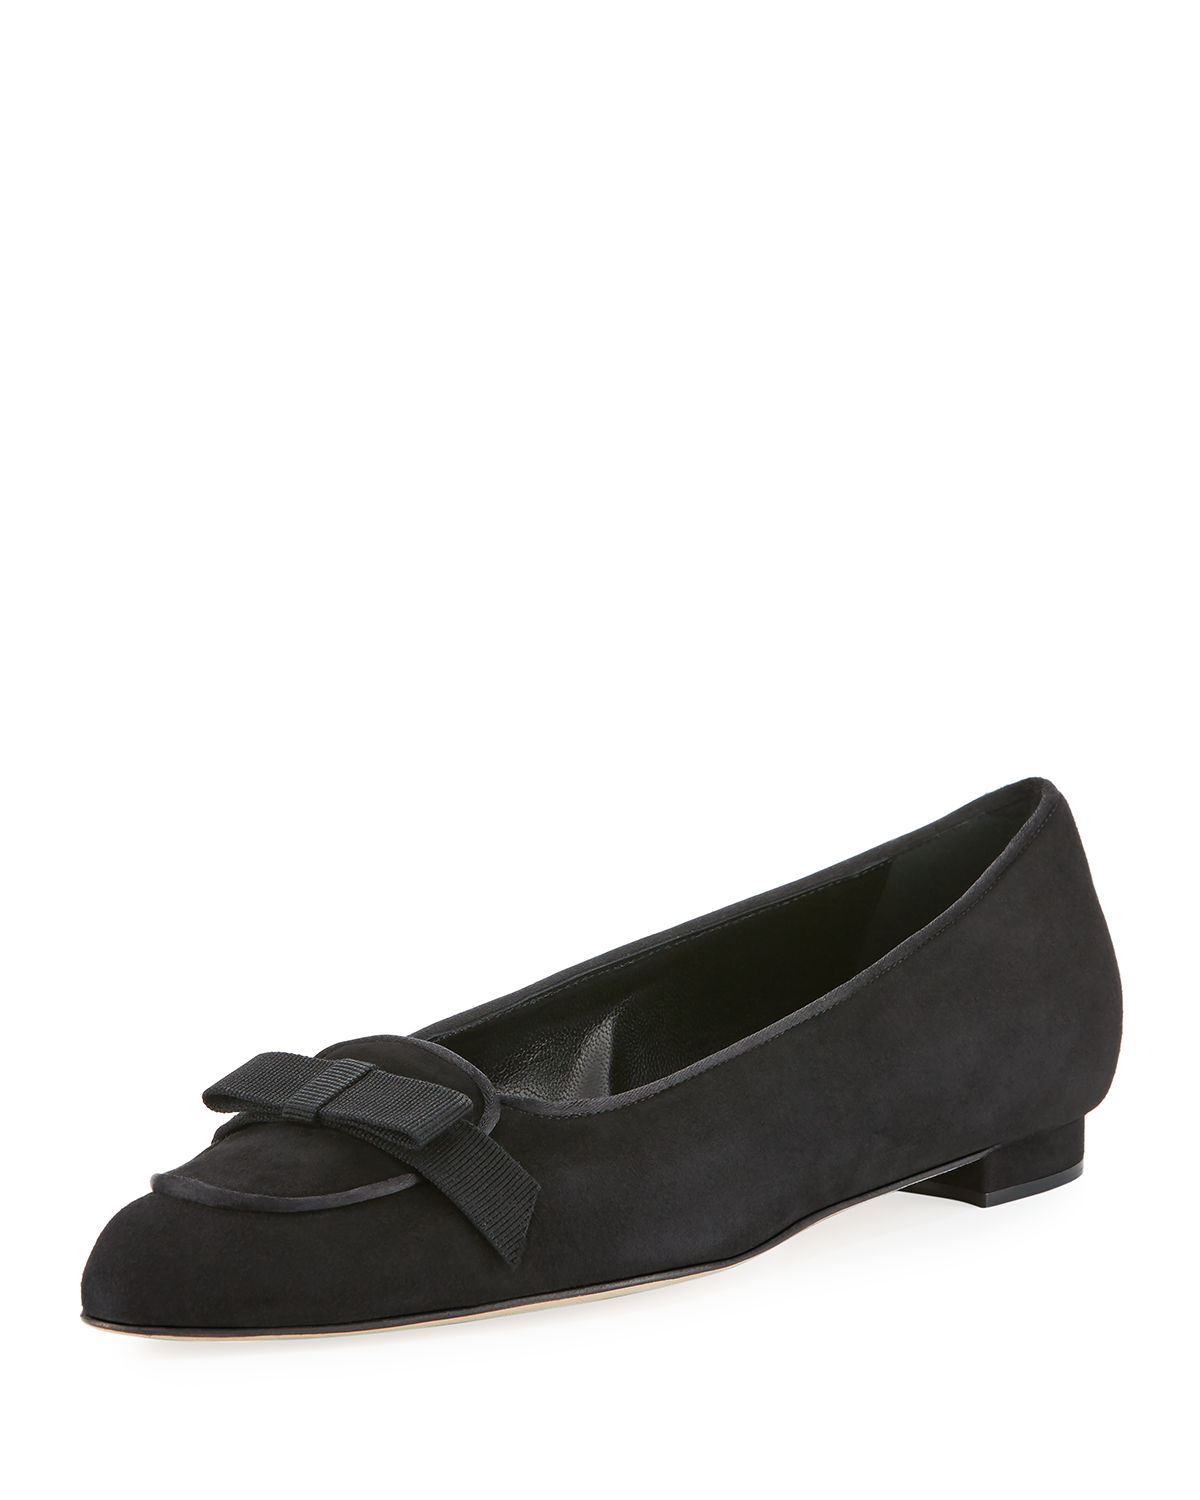 Furia Suede Bow Flat